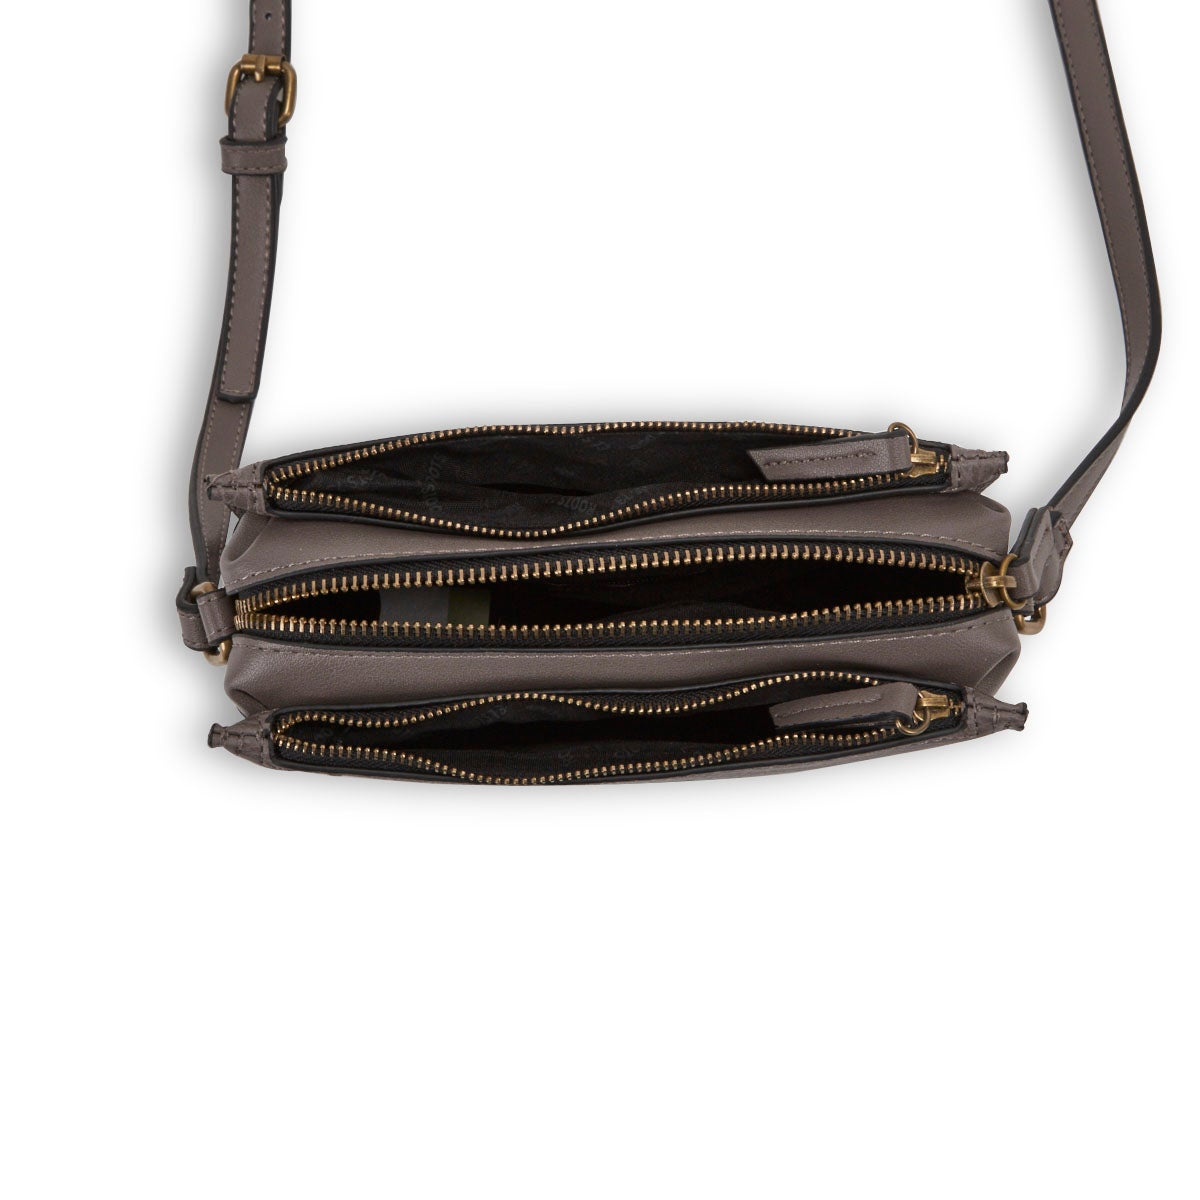 Lds Roots73 gry 3 compartment crossbody